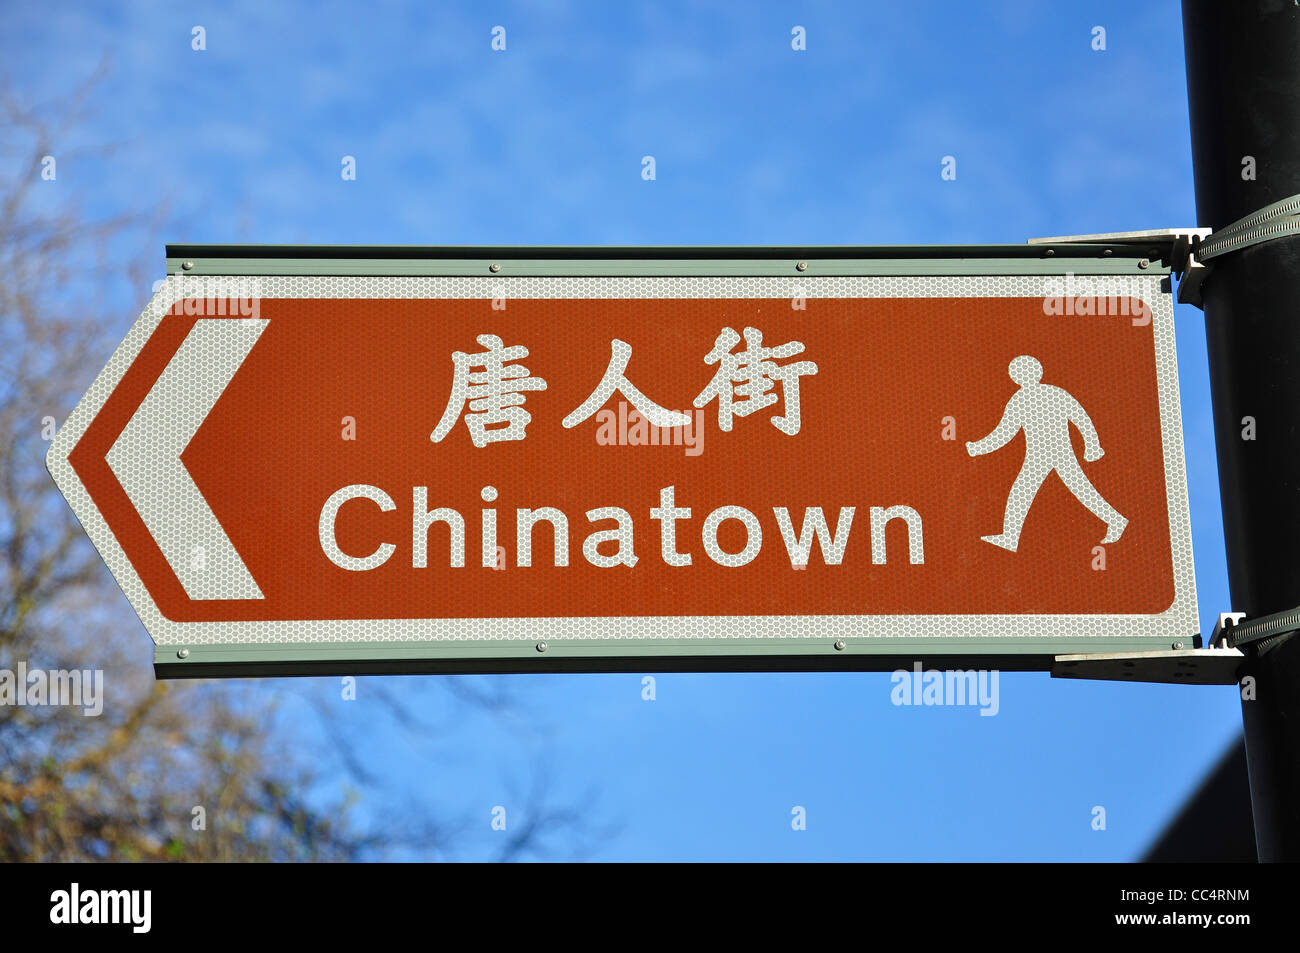 Pedestrian sign to Chinatown, Newcastle upon Tyne, Tyne and Wear, England, United Kingdom Stock Photo